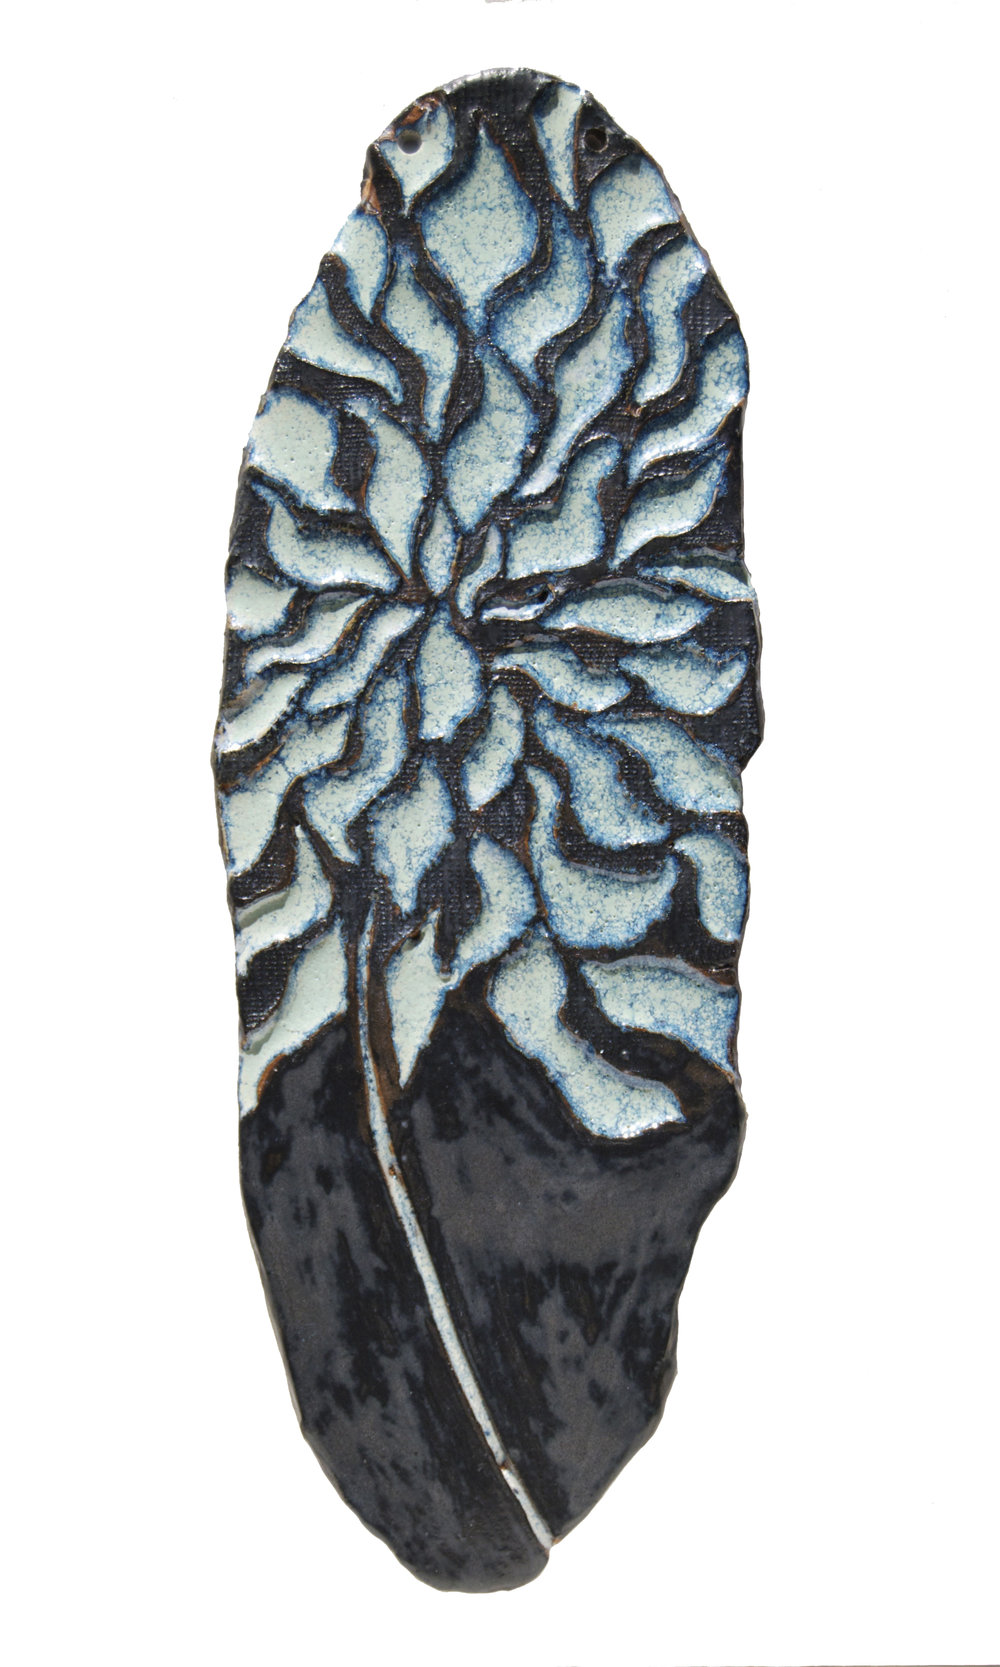 "Ceramic Wall Decor (""Speckle-Feathered Blue Flower"")"